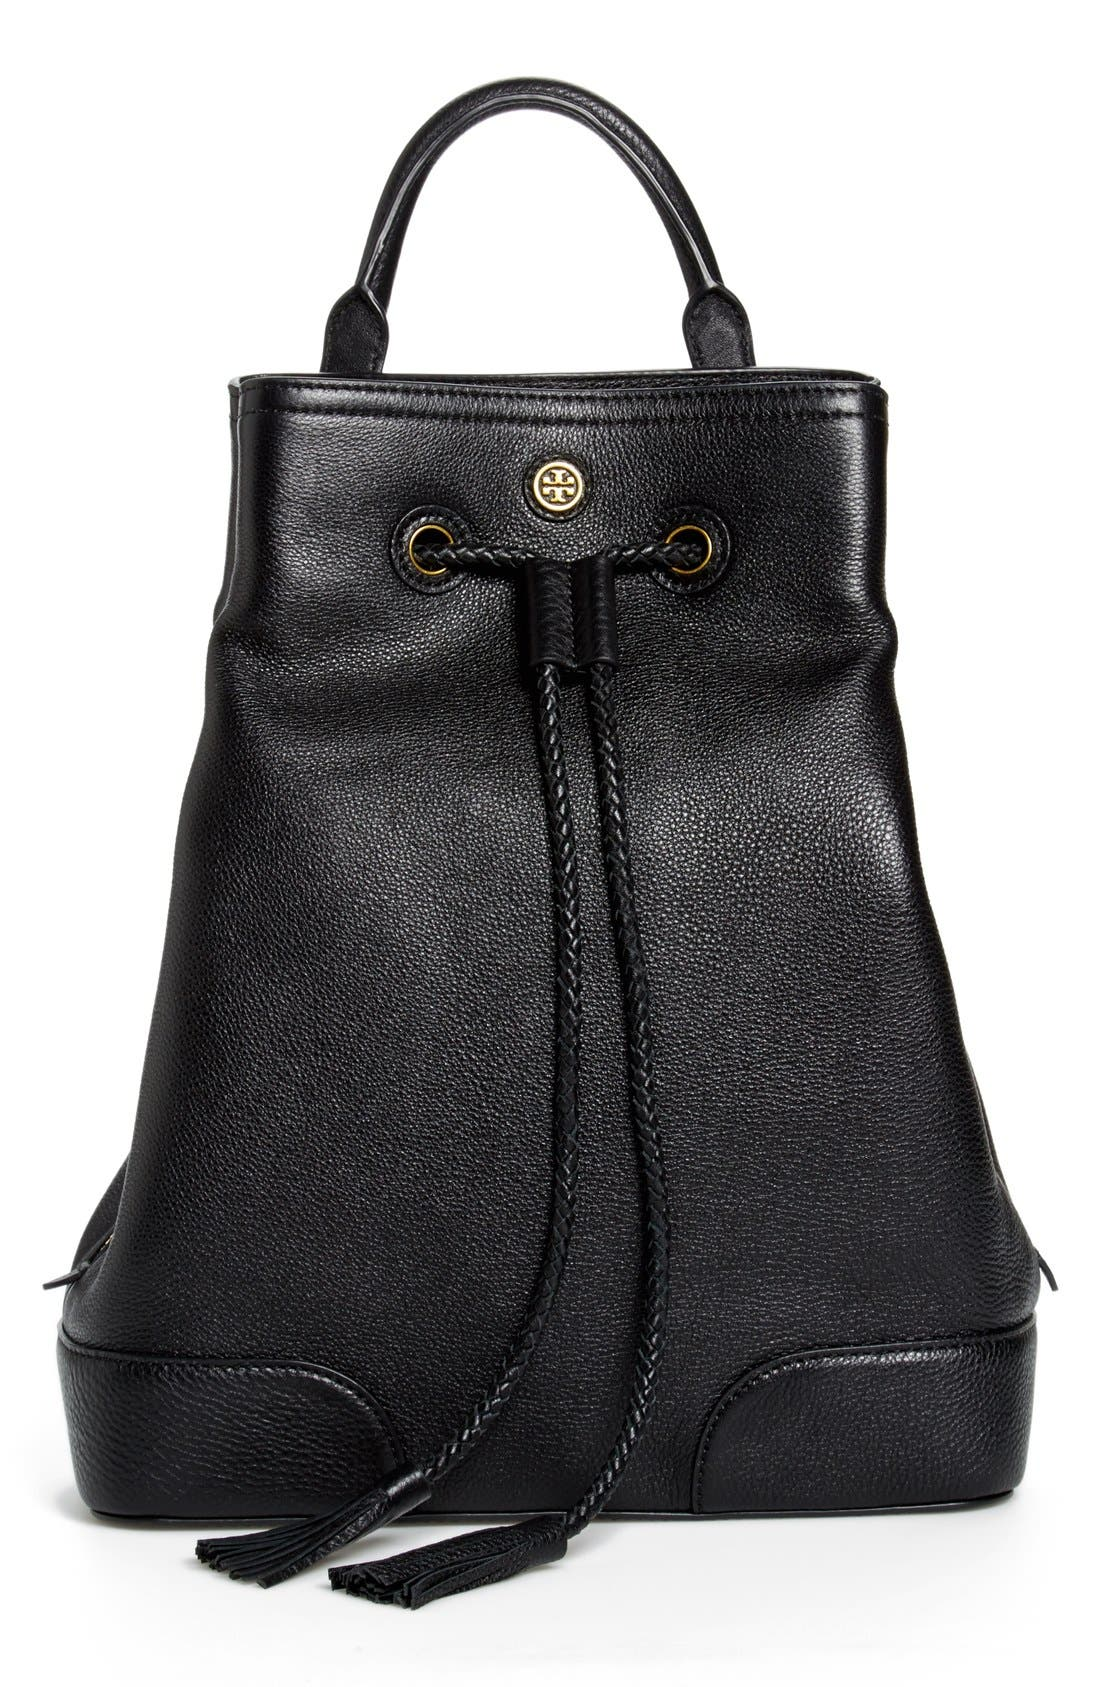 Alternate Image 1 Selected - Tory Burch 'Frances' Leather Backpack